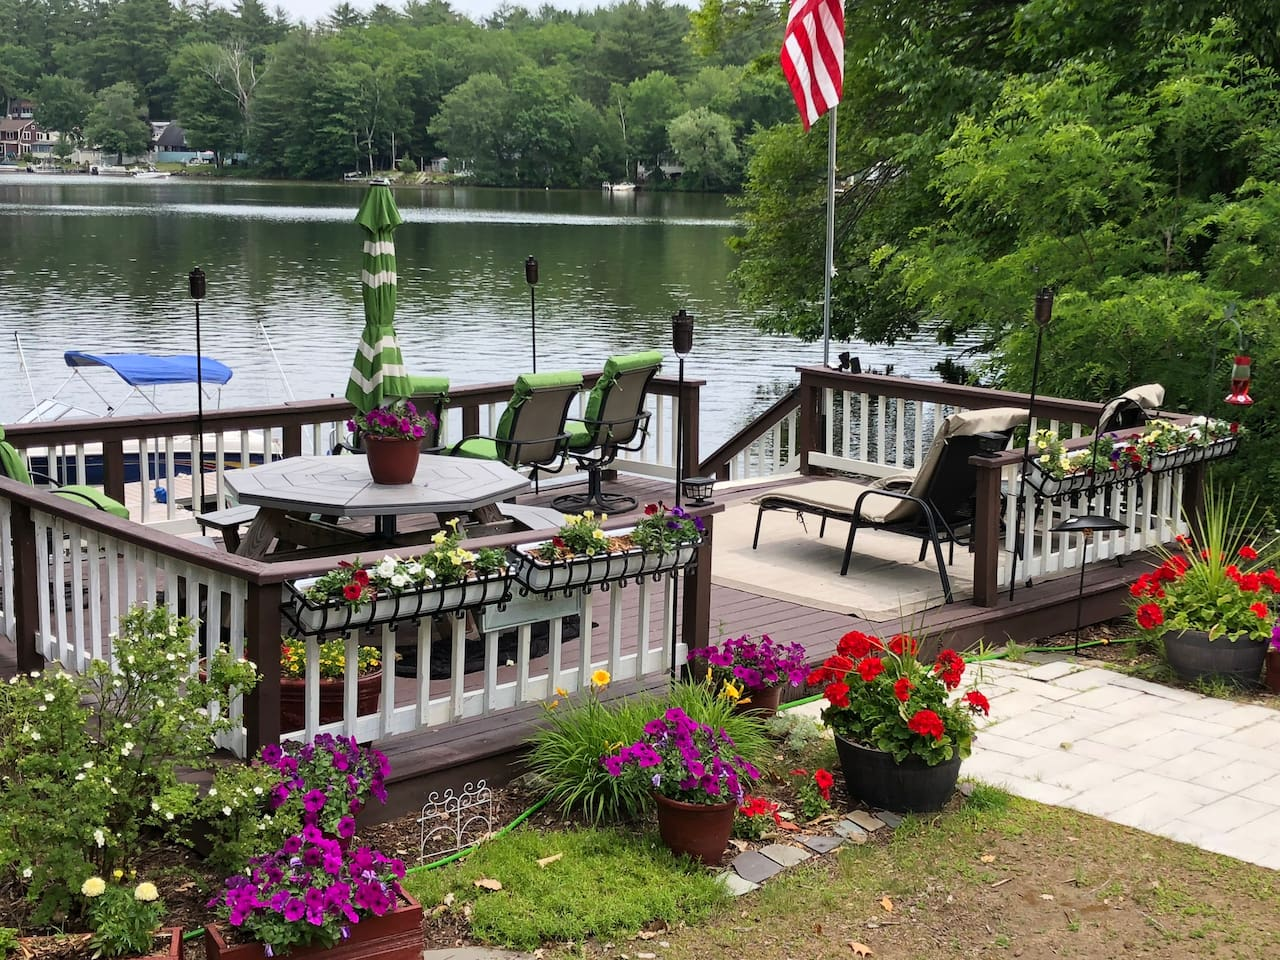 Lakeside deck and dock for your use with 8 seat picnic table chairs and optional boat mooring. (Dock and mooring are seasonal) We occassionally access the dock to use our boat, but other than that you have it to yourselves, along with the pedal boat.